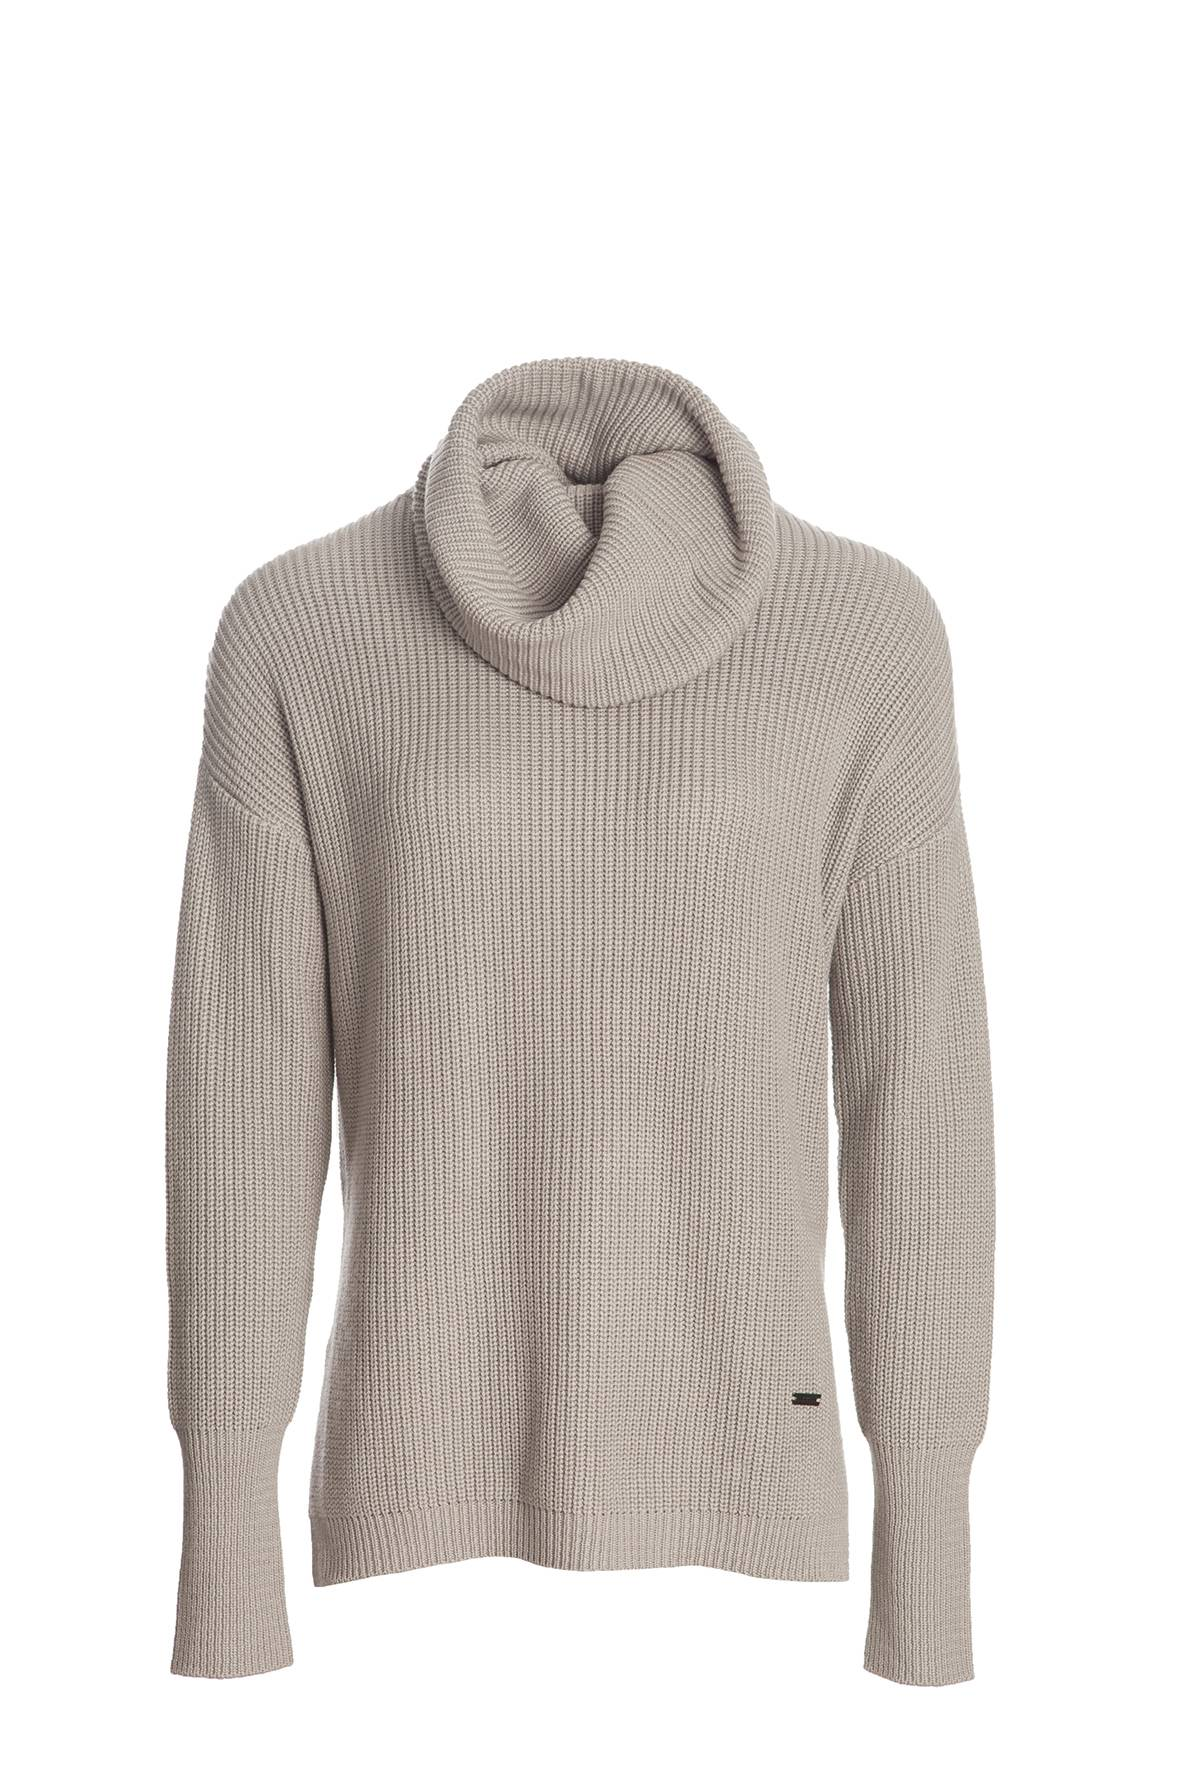 Alessandro Albanese Cremona Relaxed Sweater Ladies